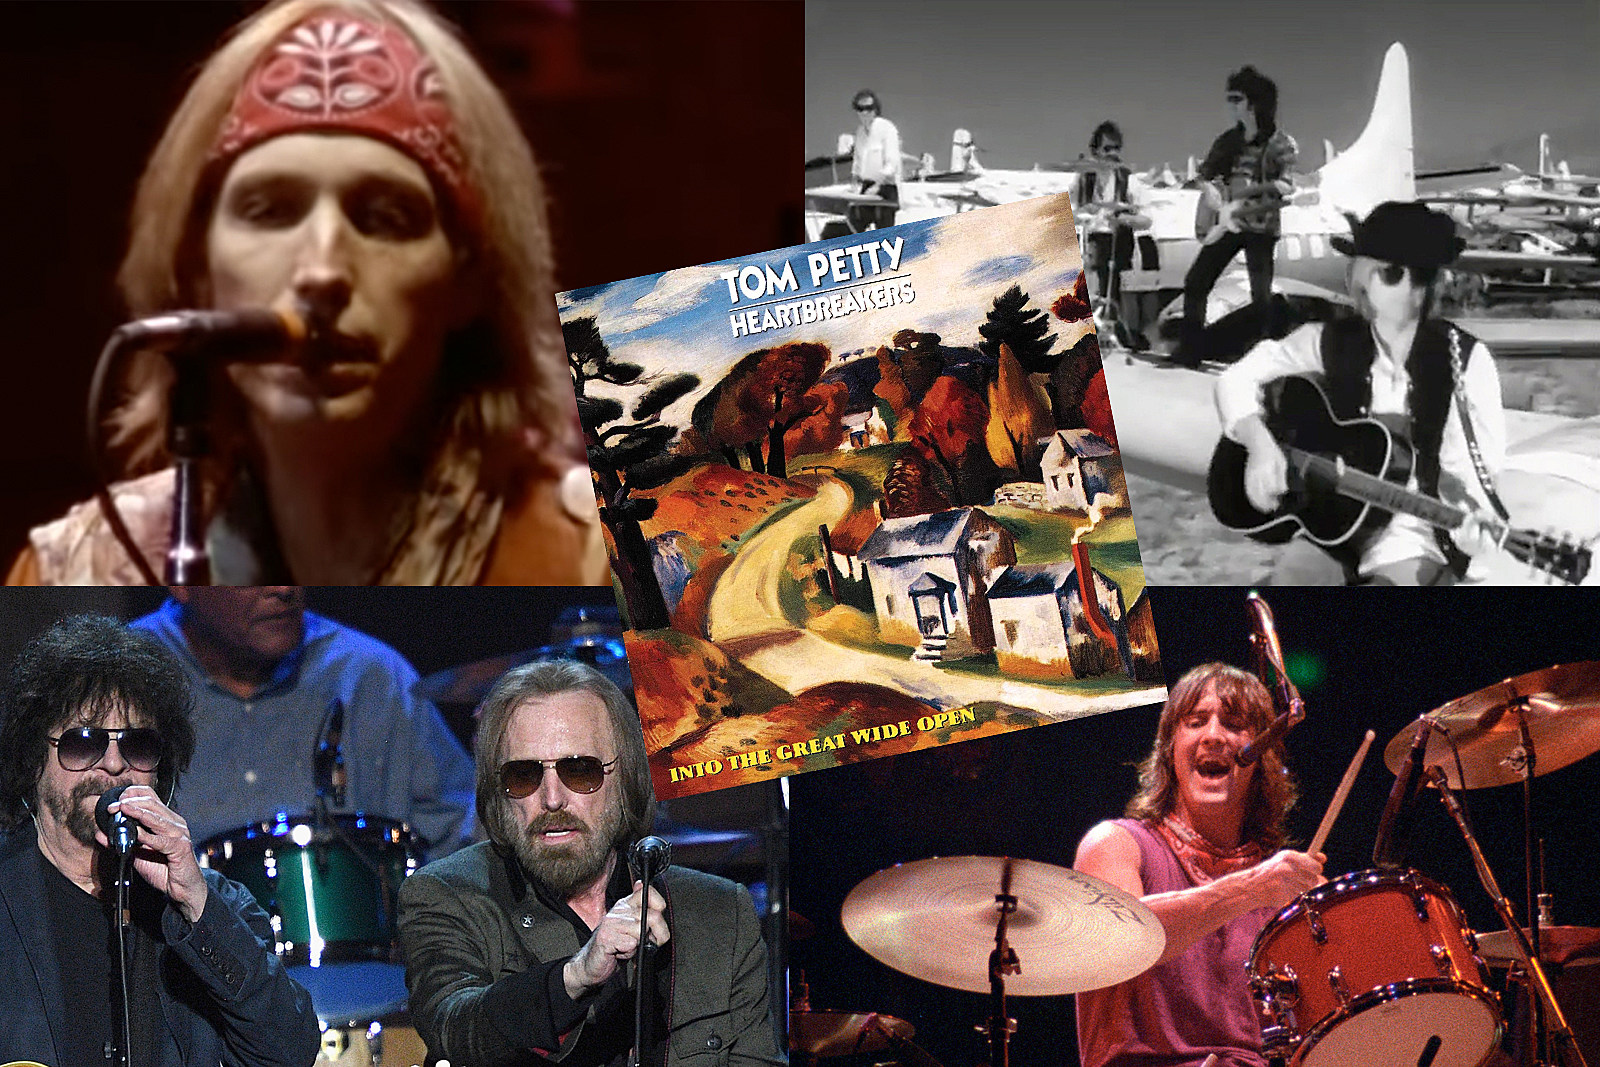 10 Facts About Tom Petty's 'Into the Great White Open' Album